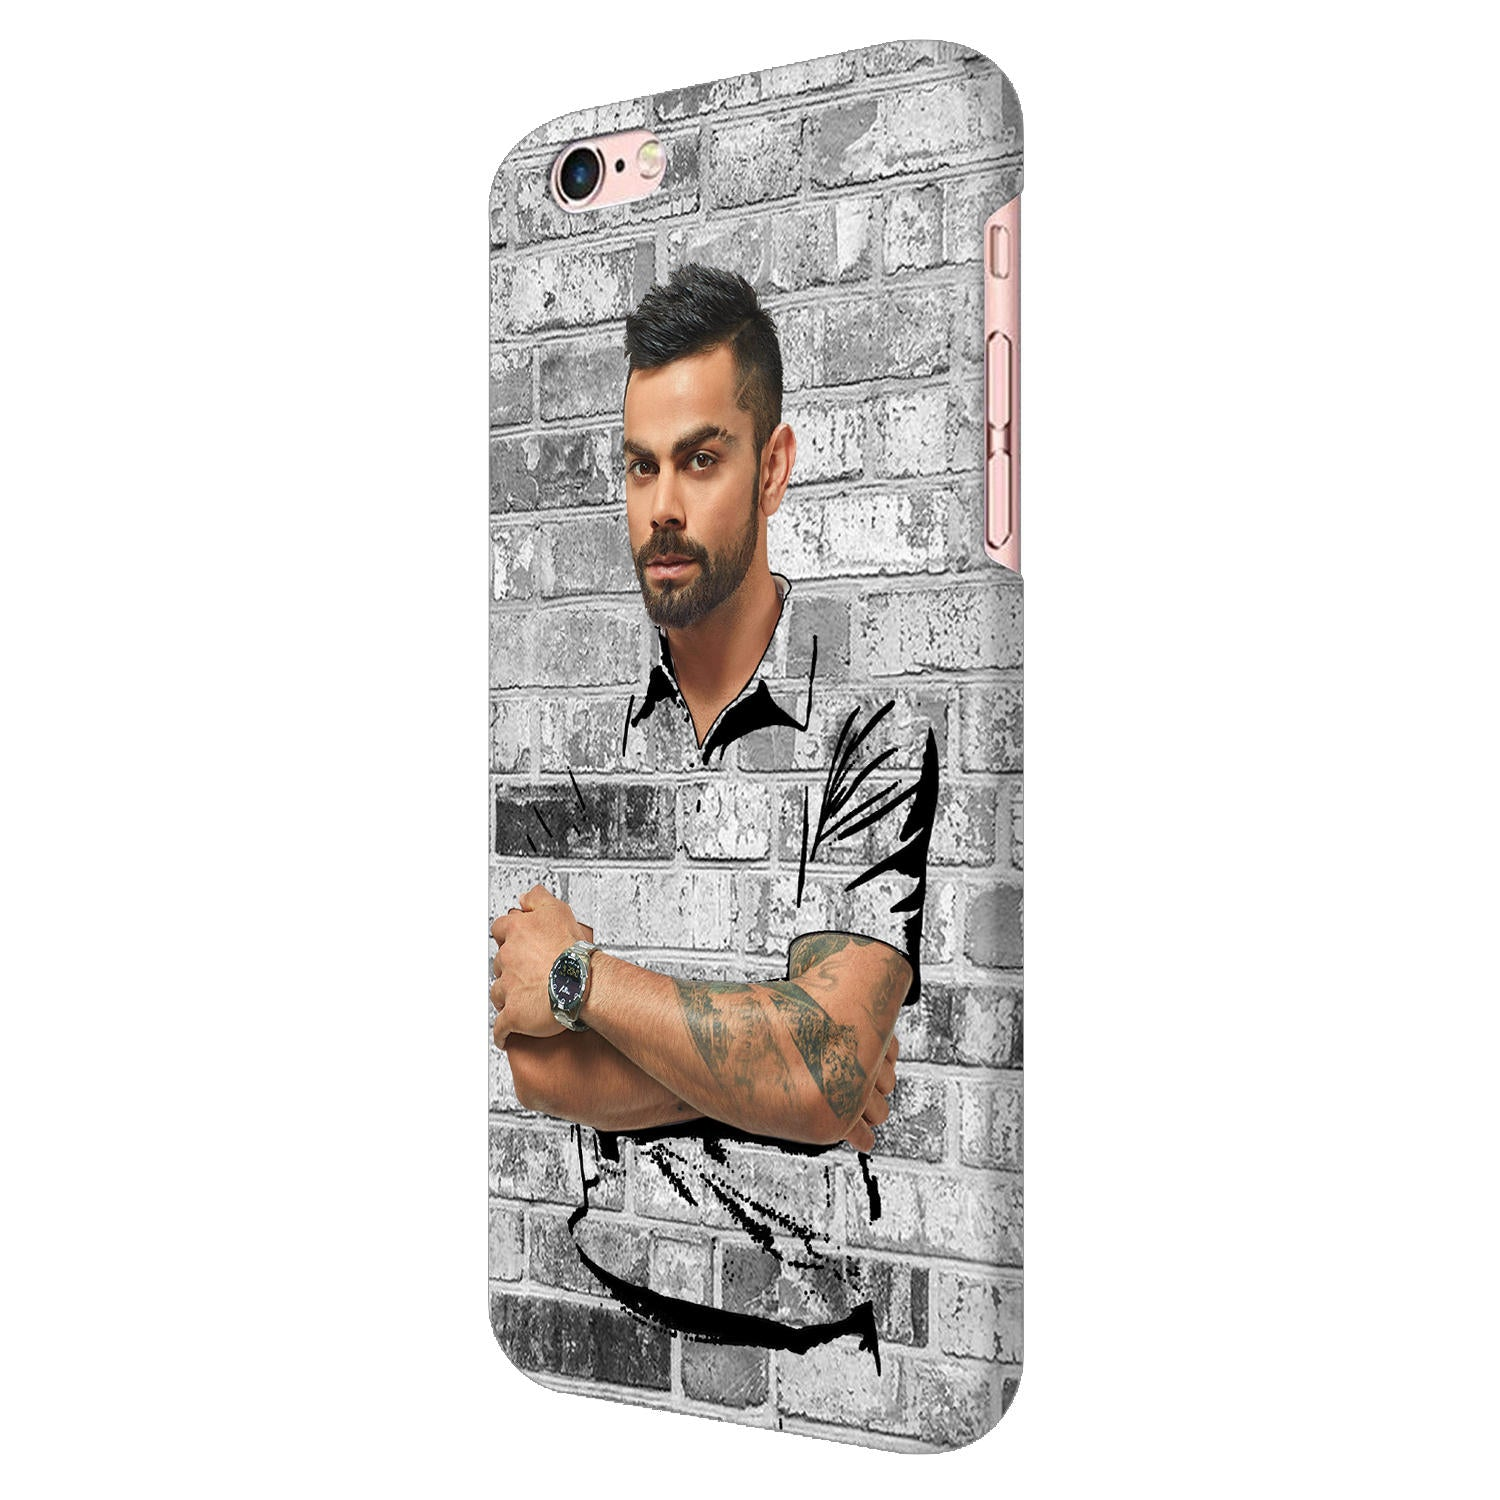 The Wall Of Kohli iPhone 6 Mobile Cover Case - MADANYU